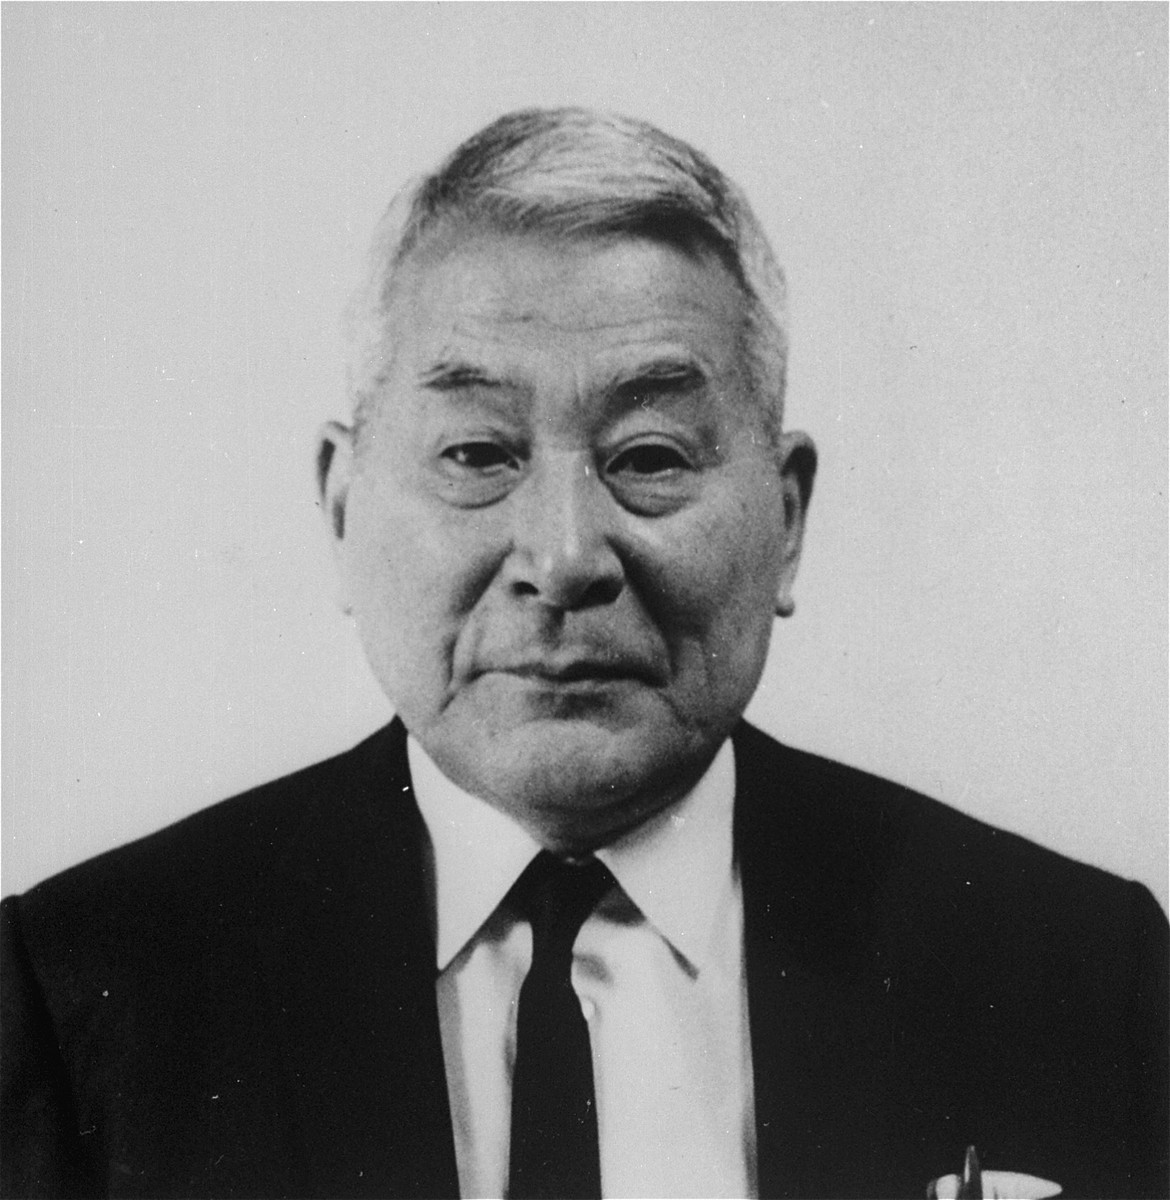 Portrait of Chiune Sugihara in his 74th year.